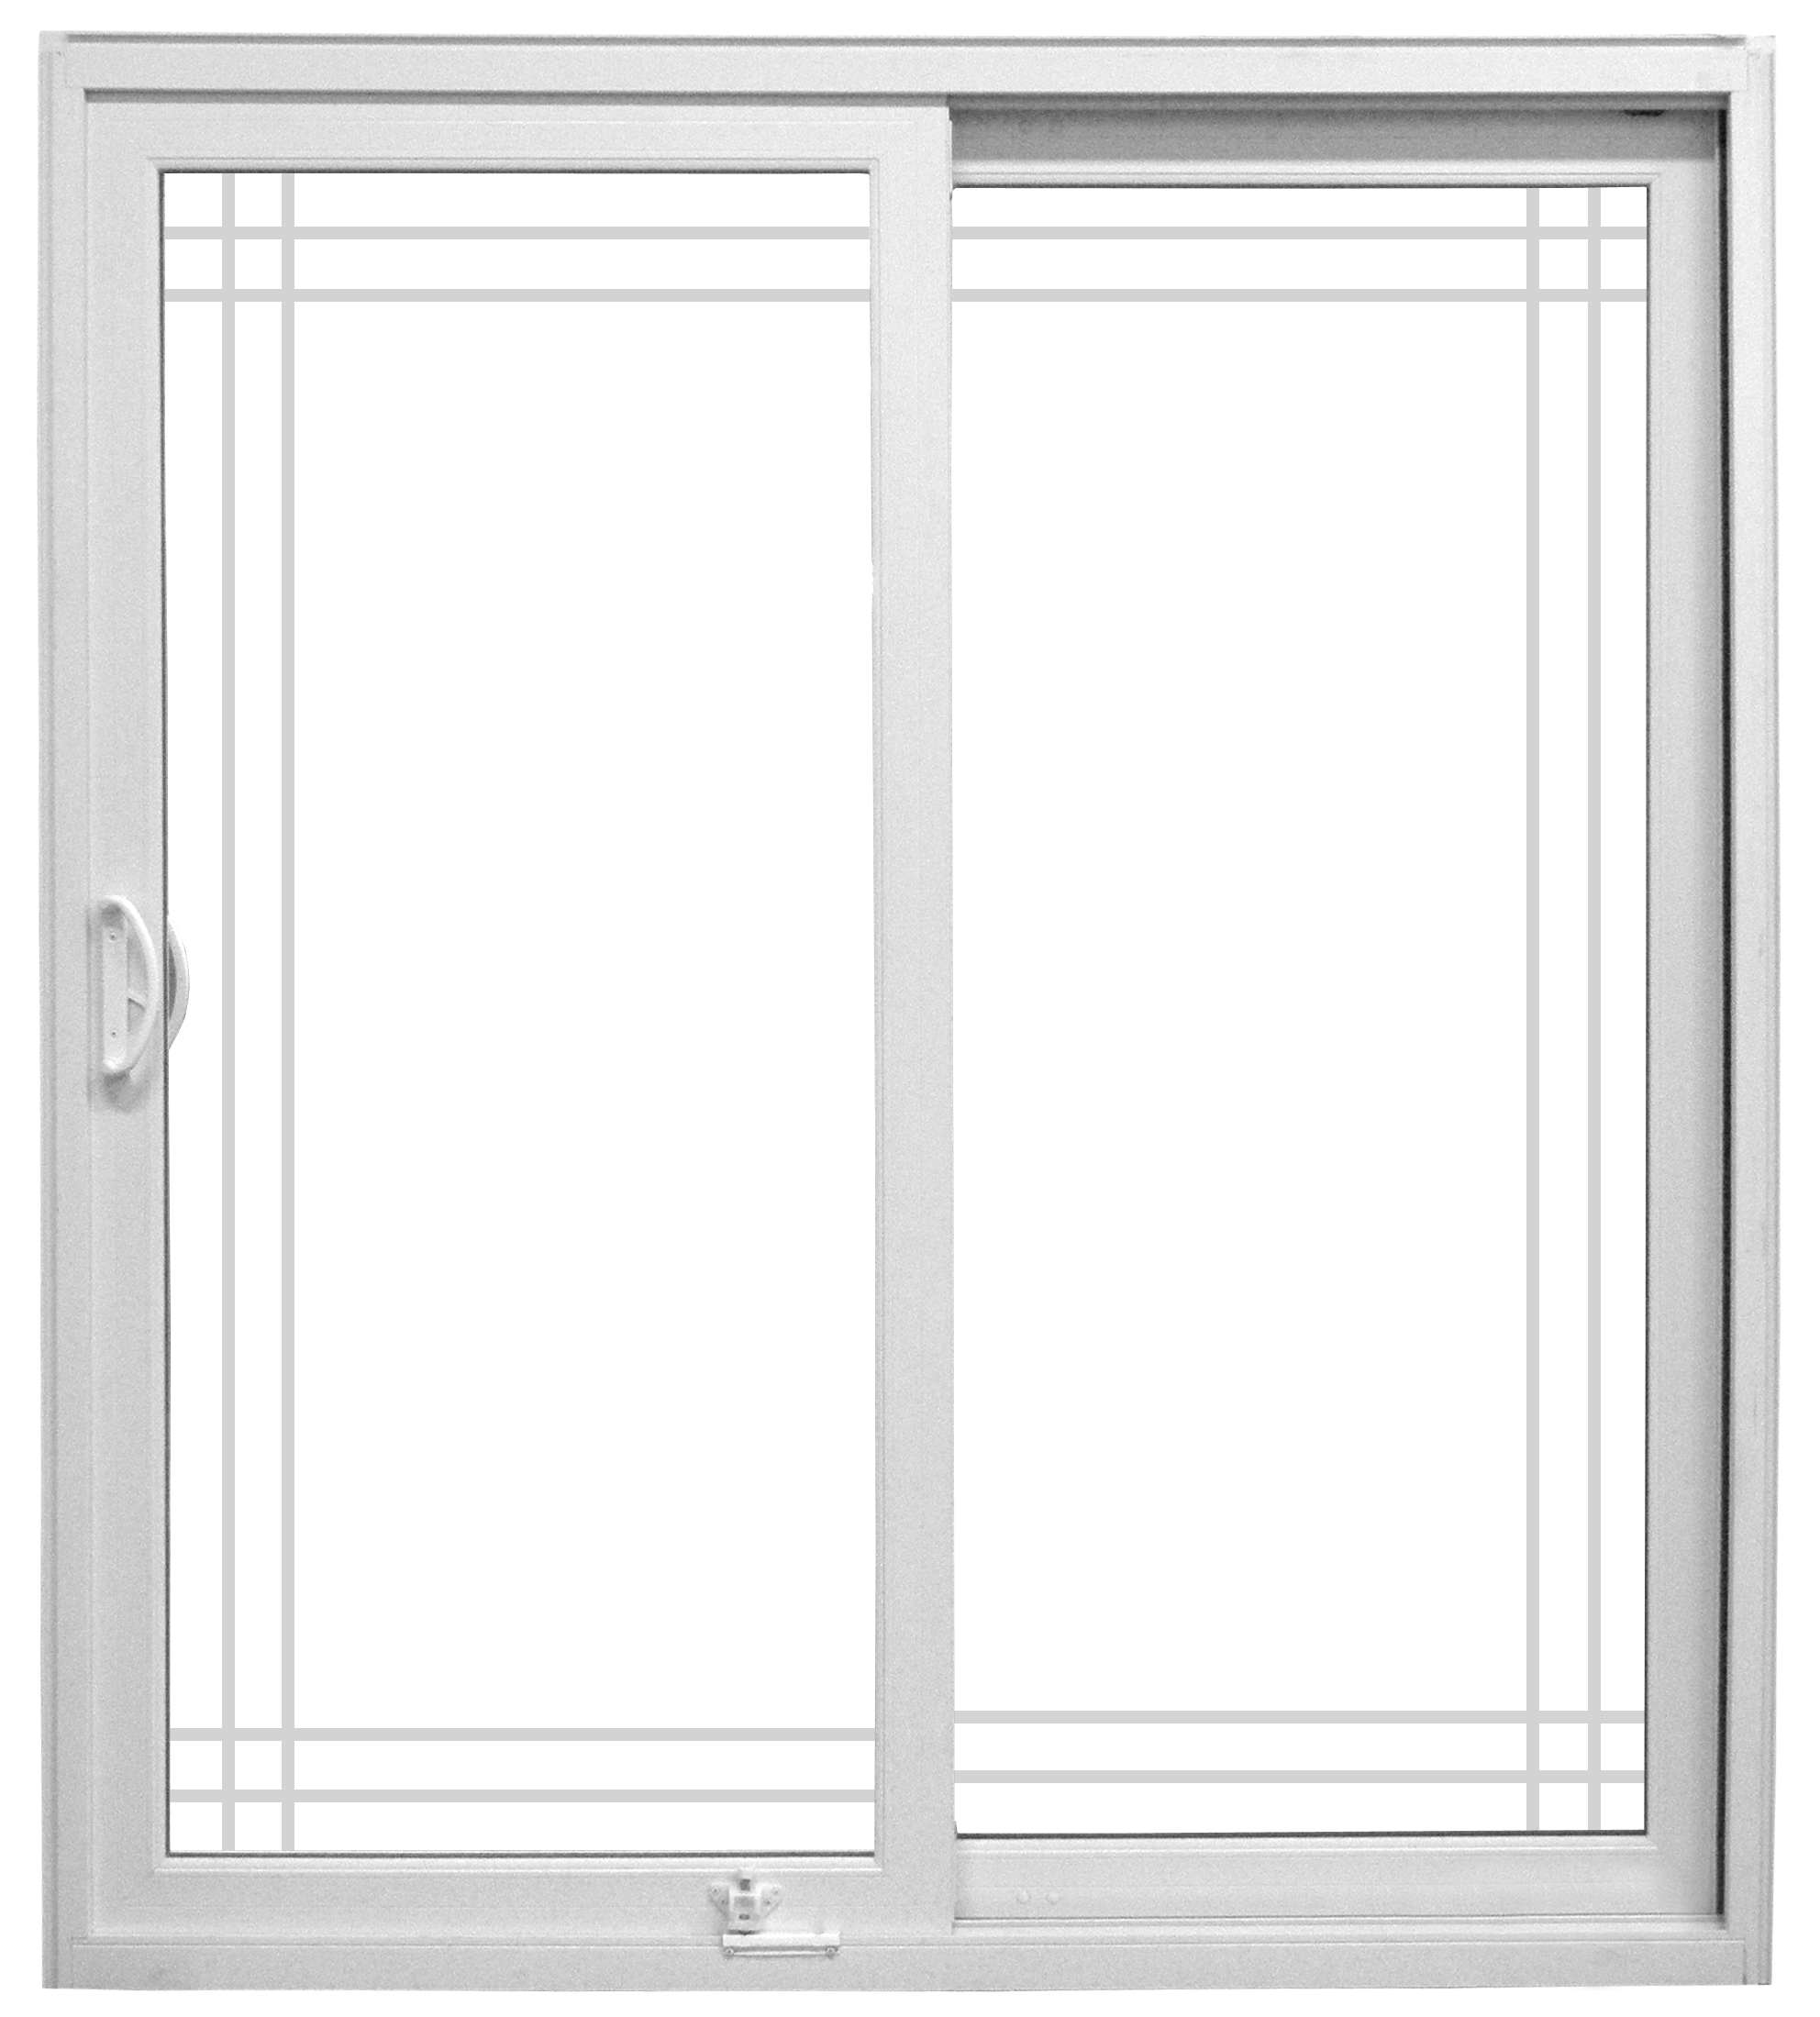 Aspect Patio-Door-Custom2-Grids.jpg